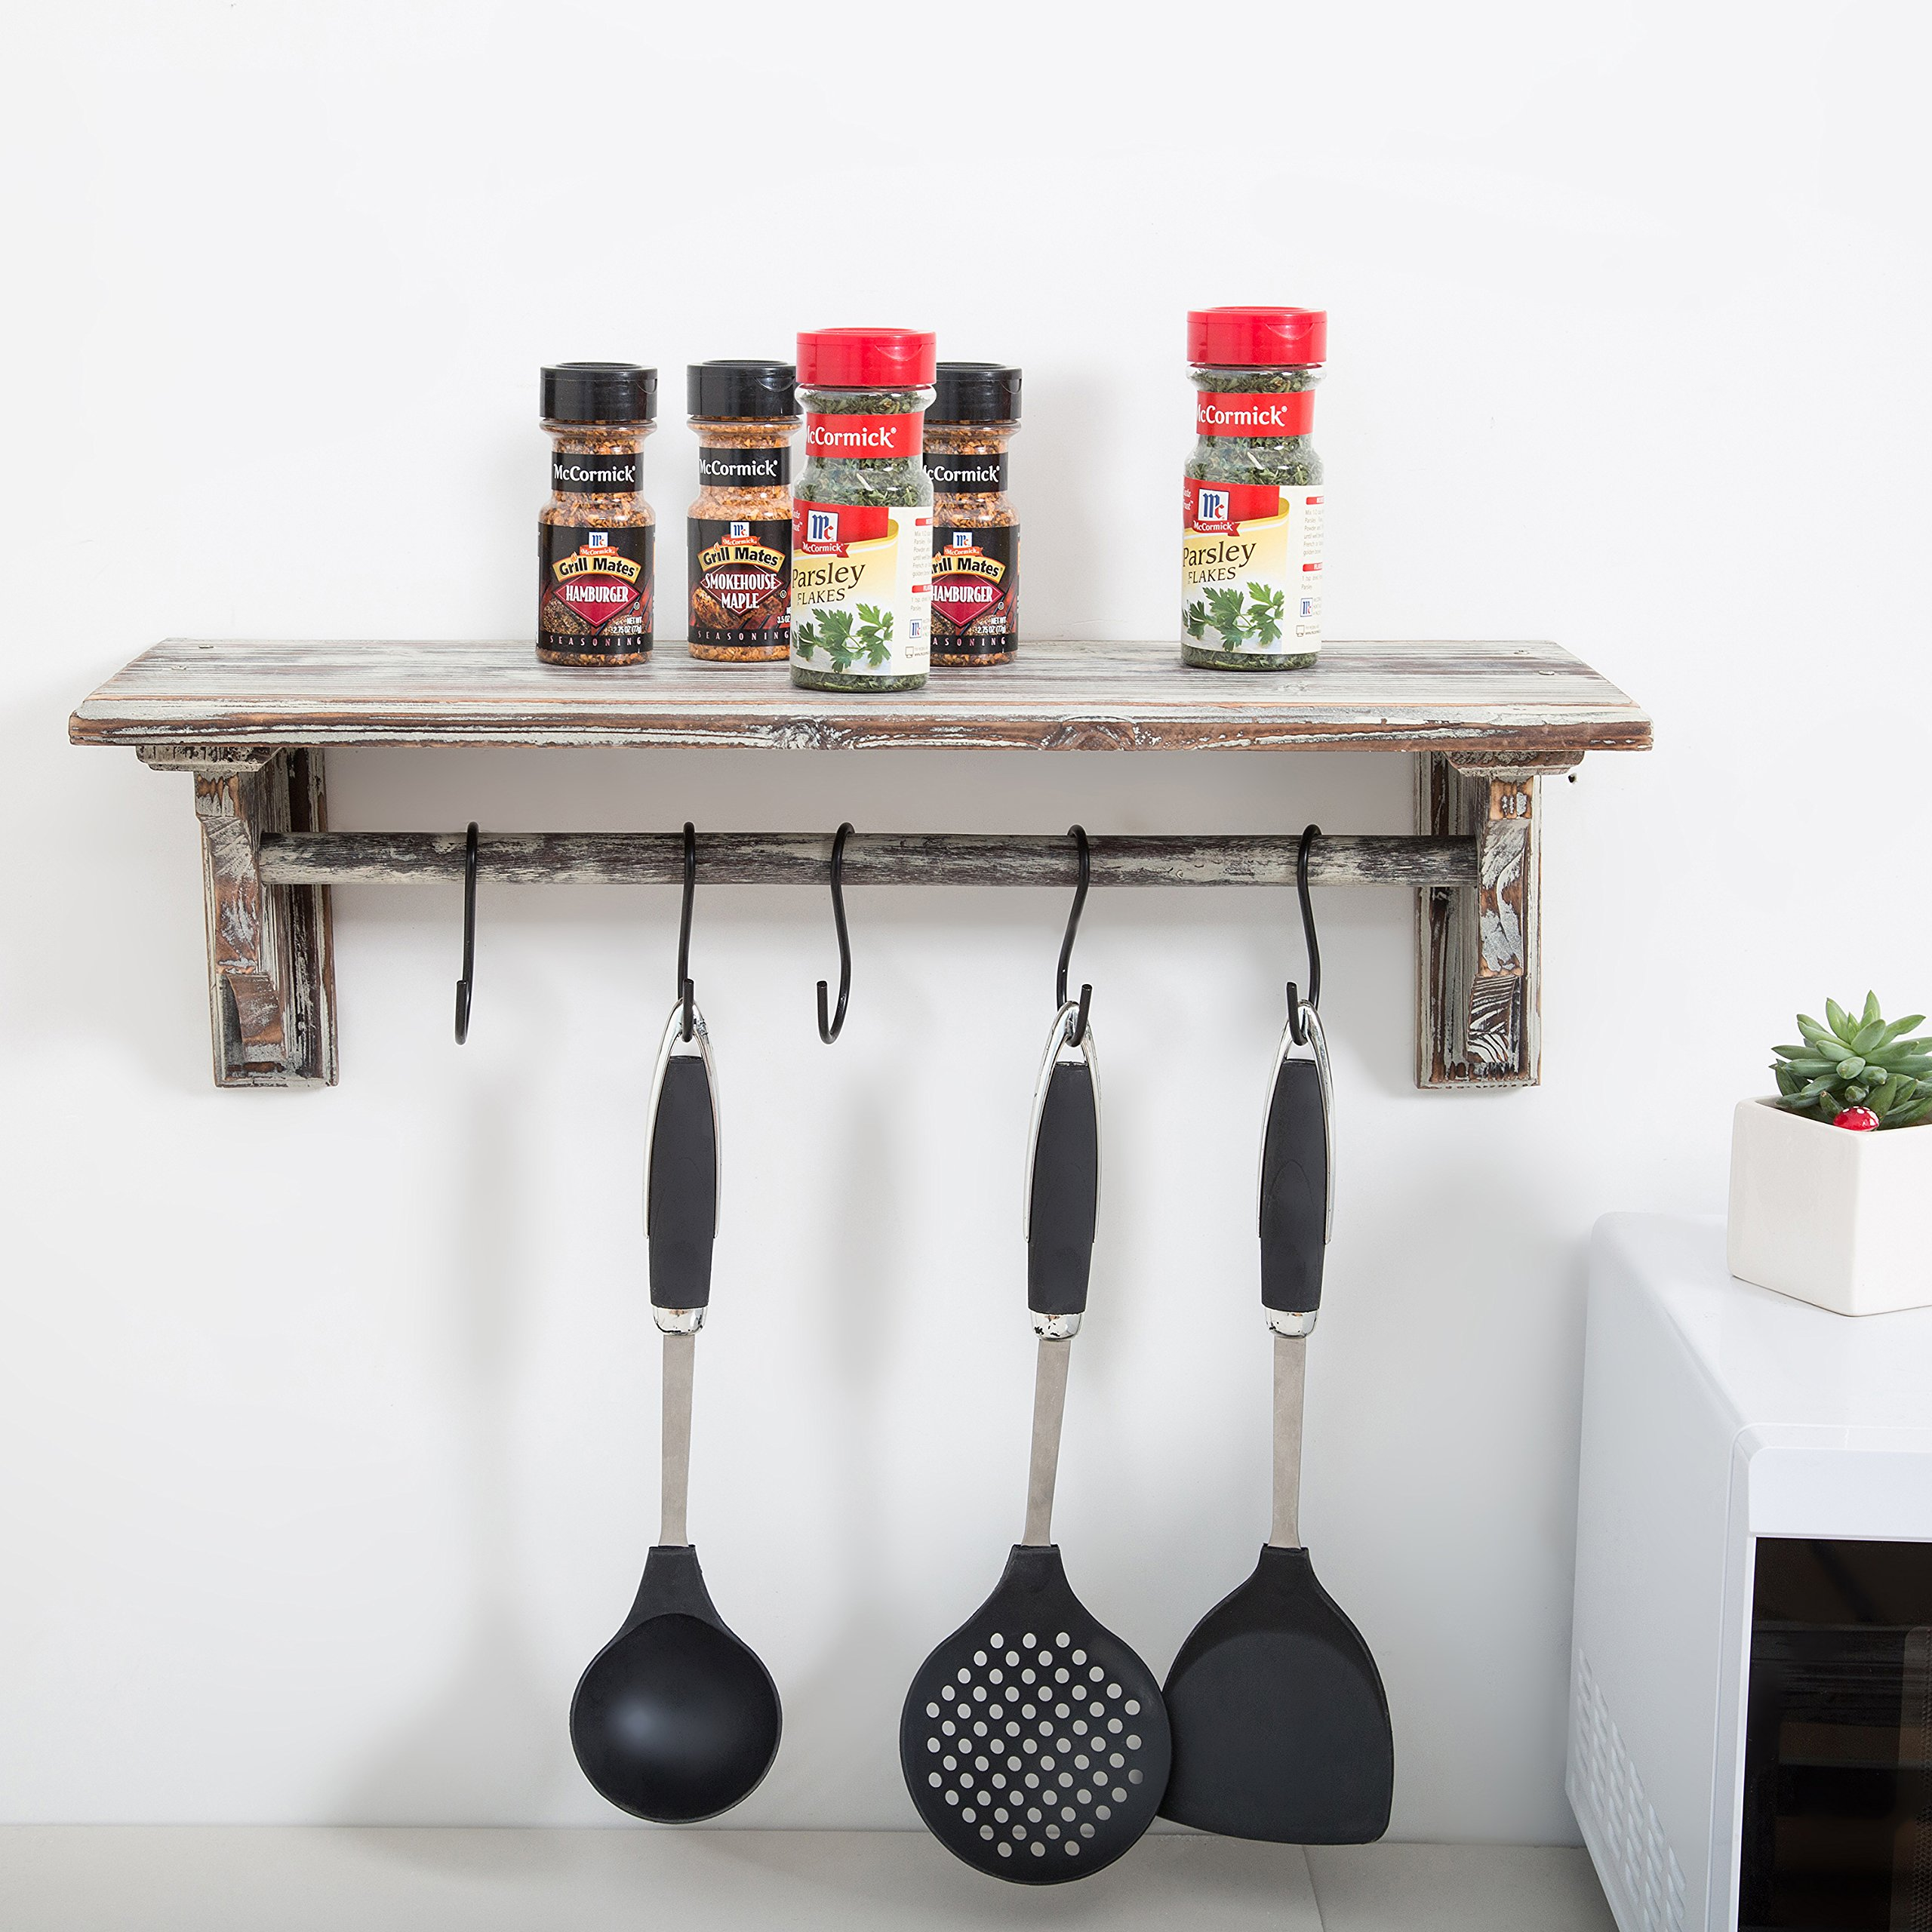 Wall Mounted Torched Wood Kitchen Storage Shelf and Towel Bar with 5 ...